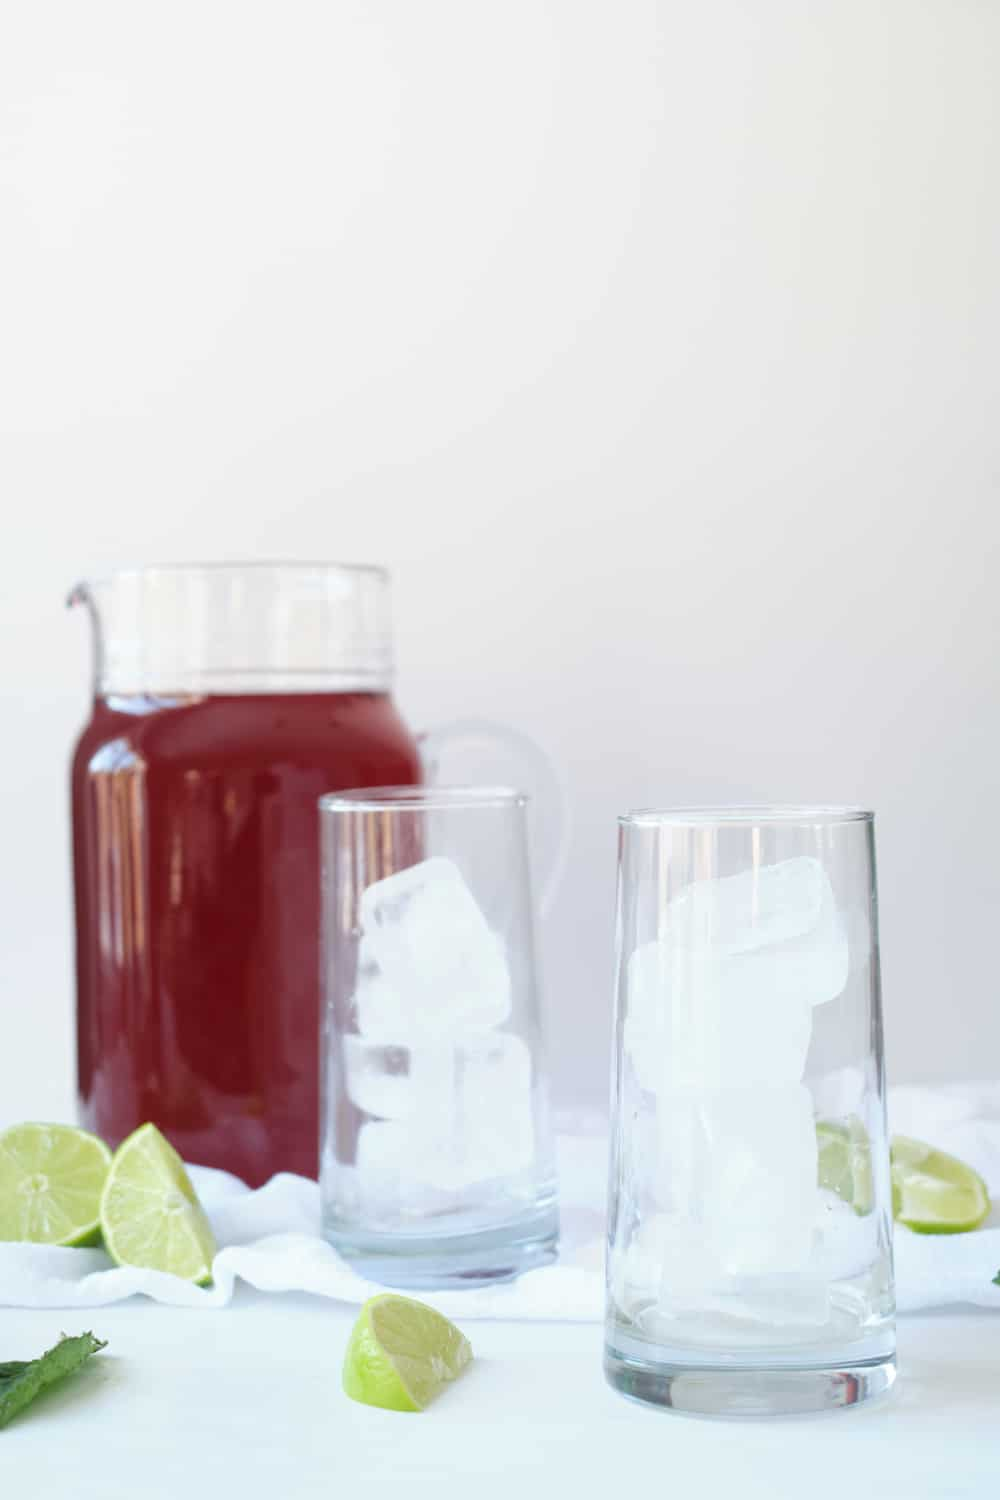 Cold brew hibiscus tea in a glass pitcher.